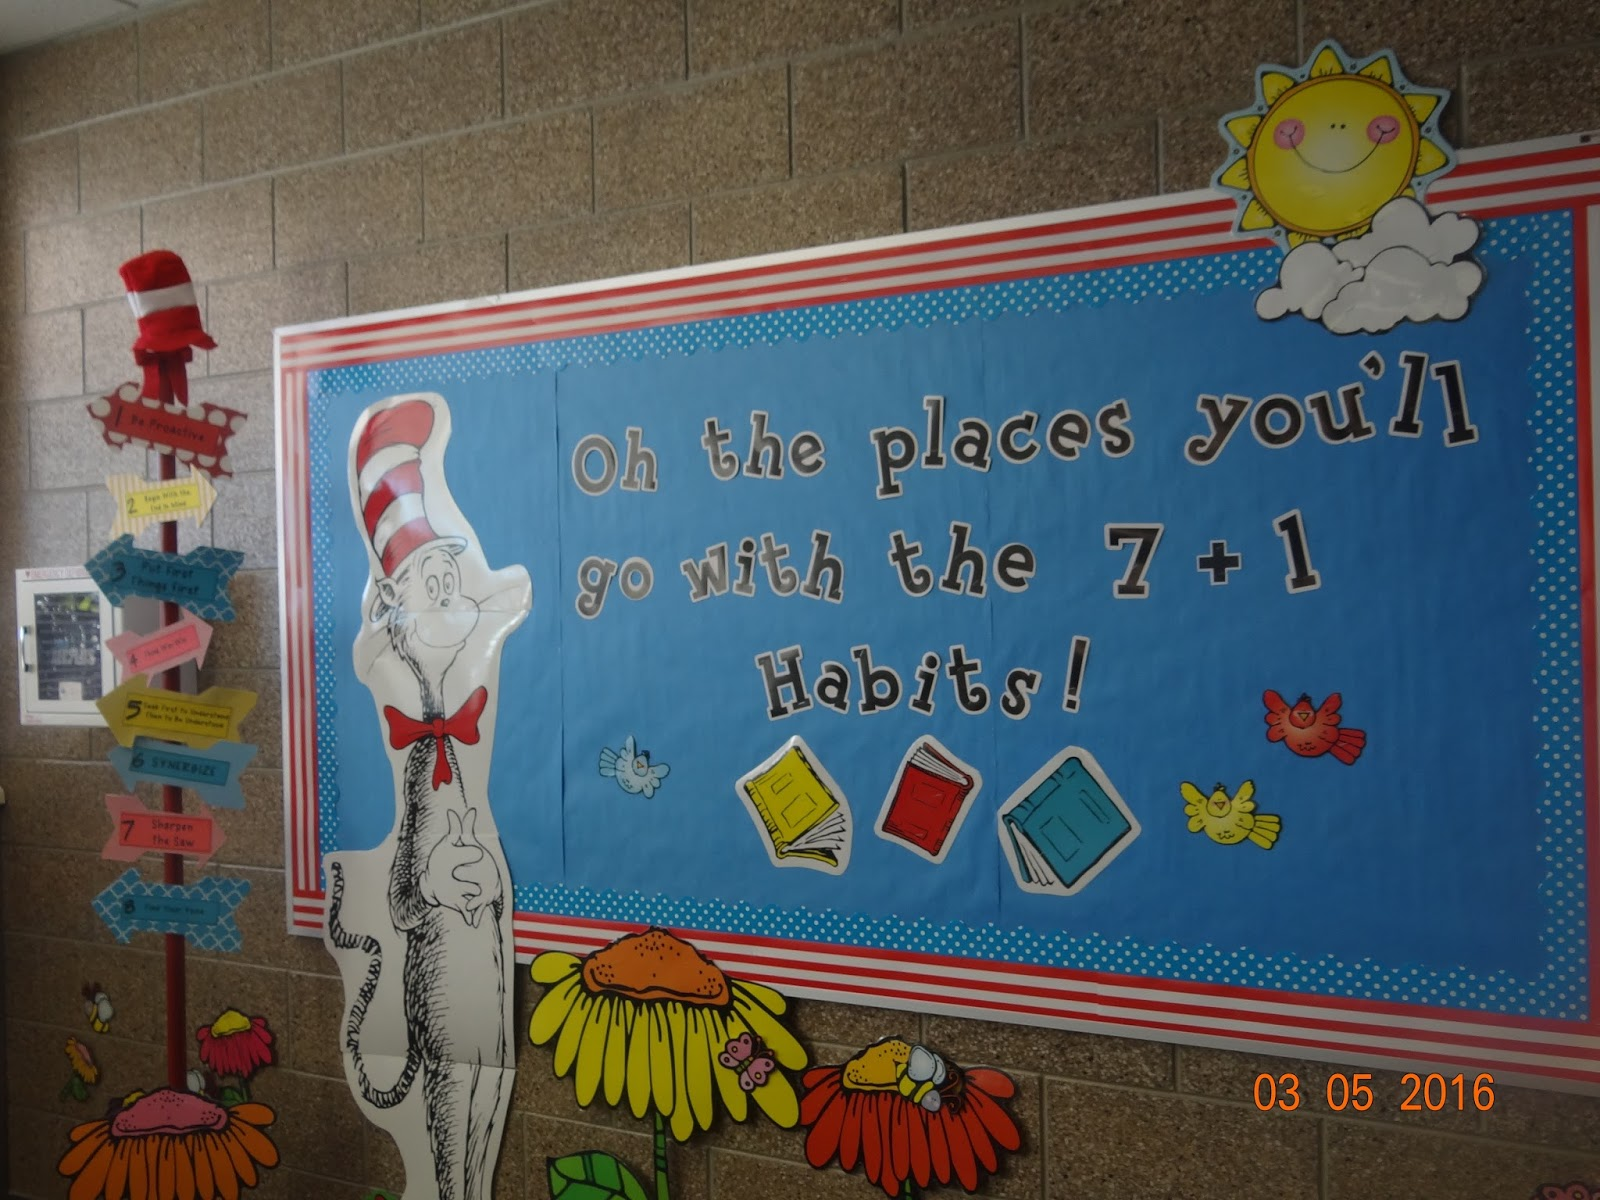 Great Our school has a yearly theme and this year our principal chose Oh The Places You ull Go another one of Dr Seuss u books She made this cute little road